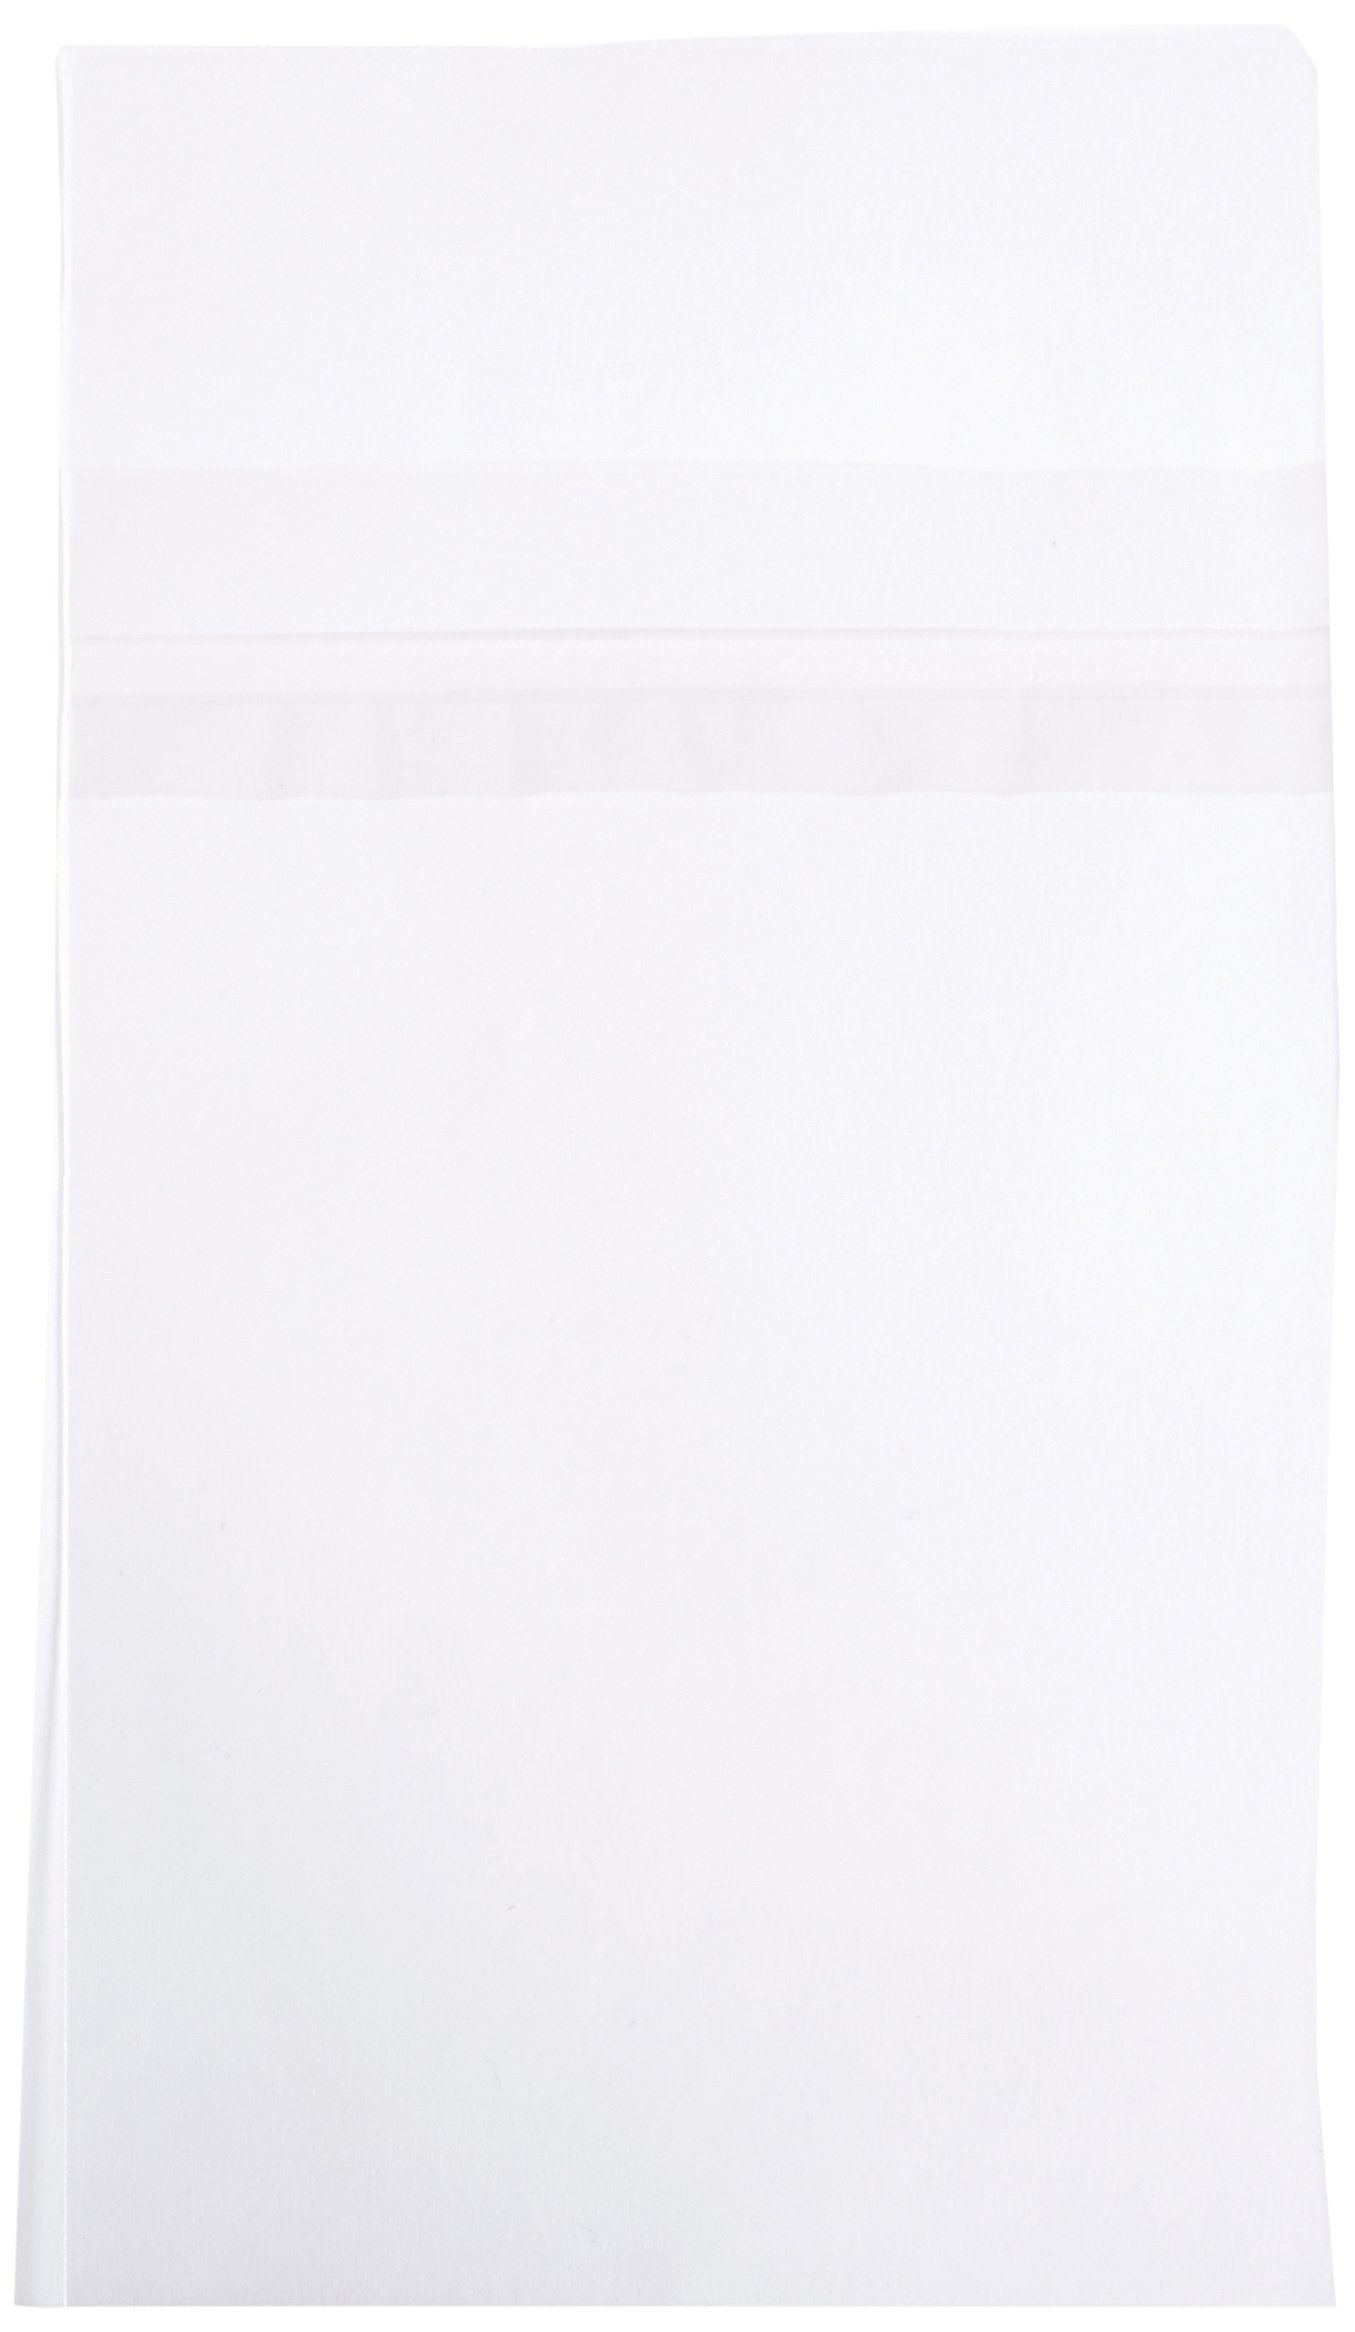 Archival Methods Crystal Clear Bags, Size: 4-7/8X6-1/8'', Safety Seal, Package Of 100.